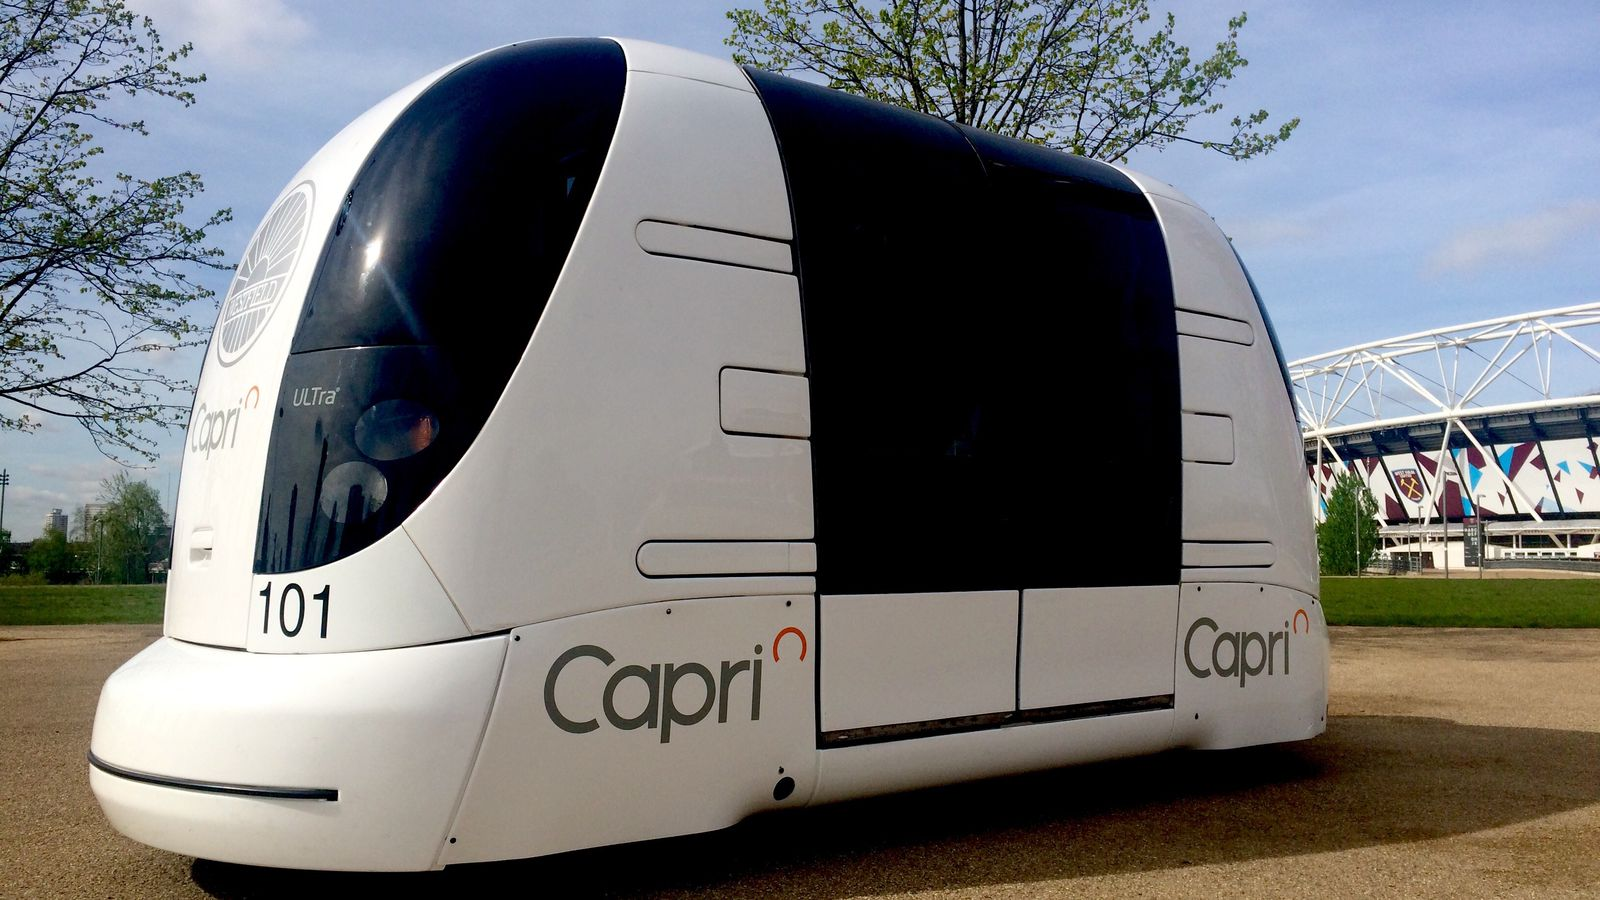 Cars For Sale Los Angeles >> New automated vehicle trial in UK aims to develop smart shuttles - Curbed